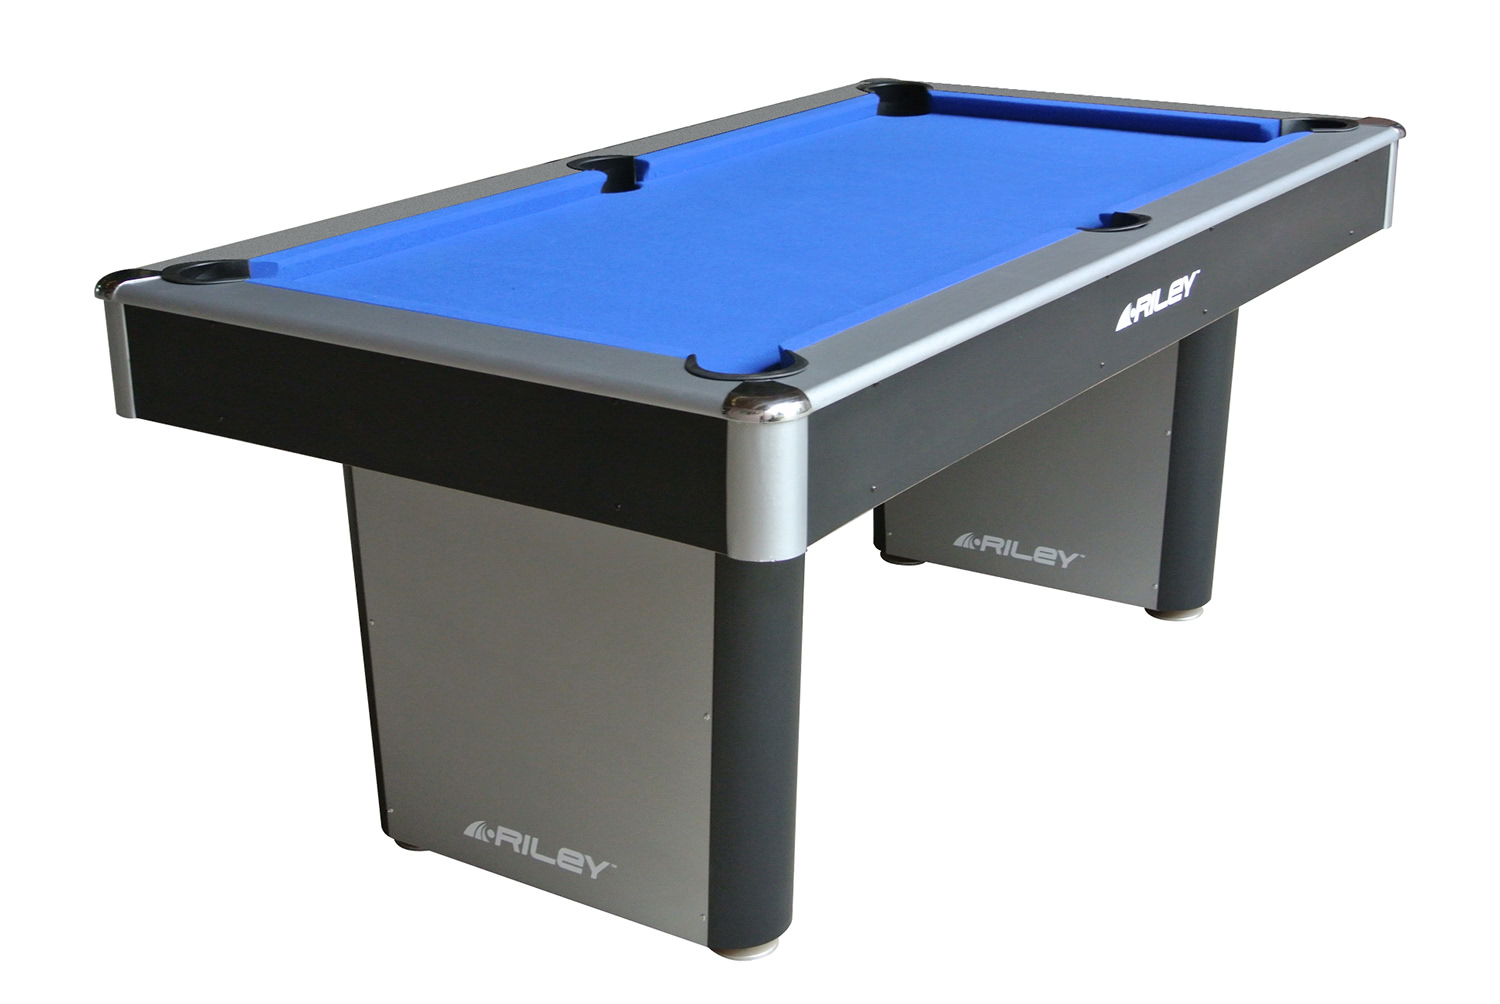 Riley pool table jl 2c liberty games for Table 6 of gstr 1